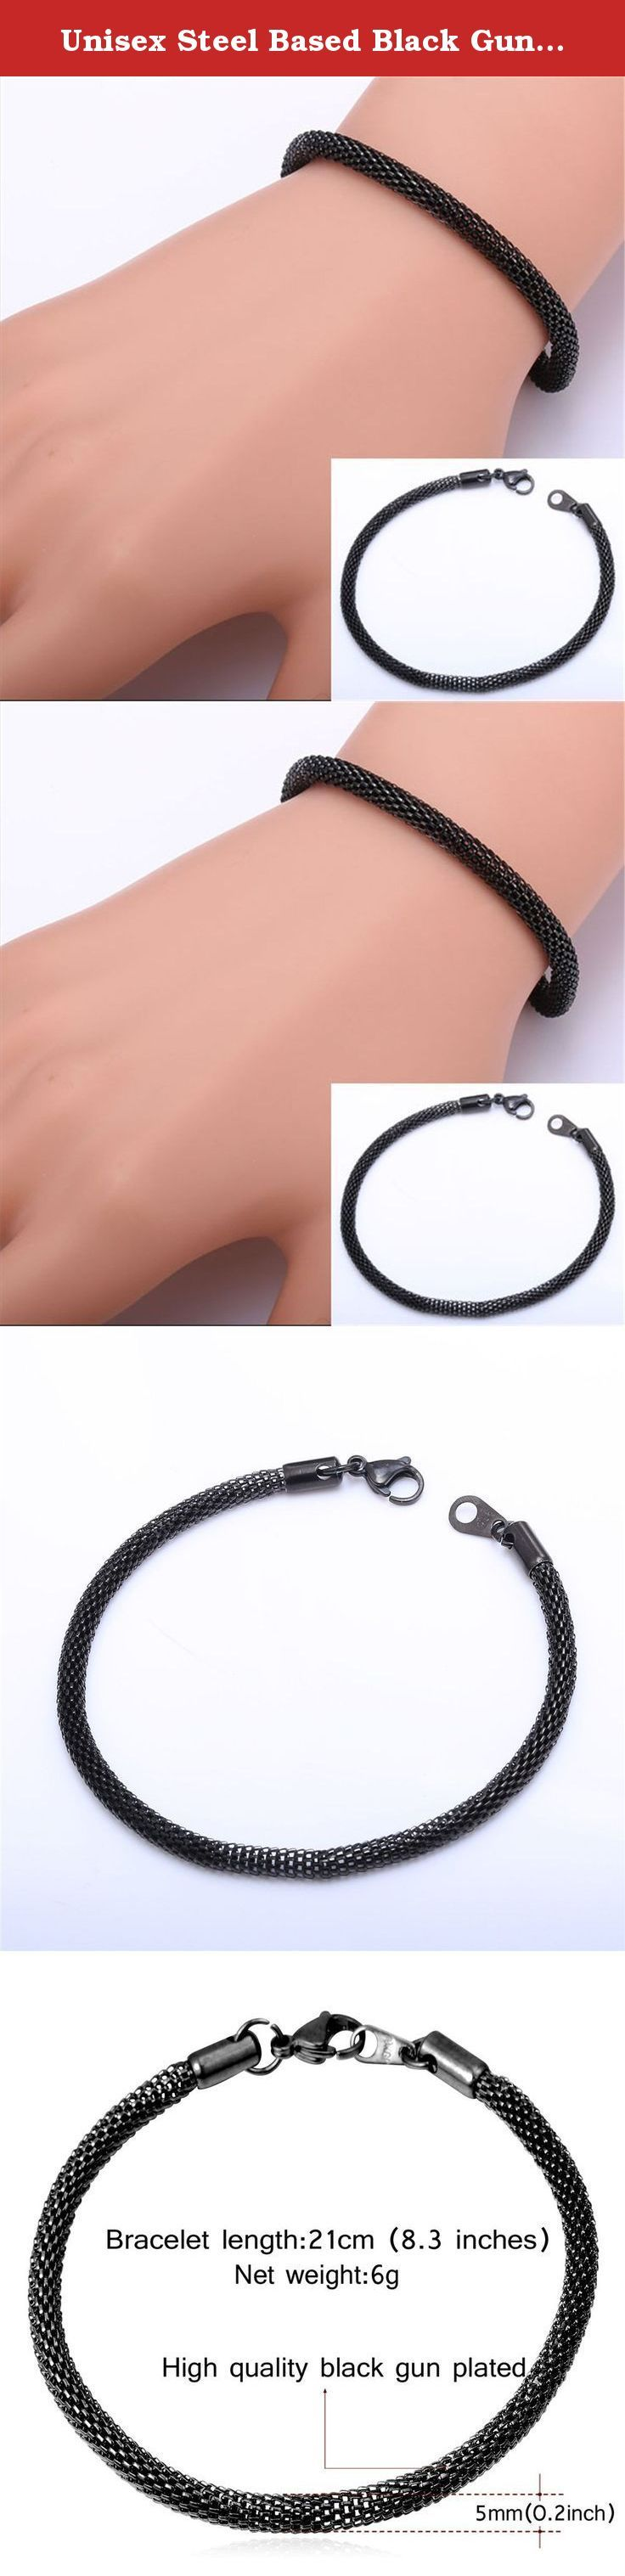 """Unisex Steel Based Black Gun Plated Mesh Chain Bracelet. stainless steel, also known as inox steel or inox from French """"inoxydable"""", is a steel alloy with a minimum of 10.5% chromium content by mass. Material:Stainless steel based,18k gold/black gun plated. Chain type: mesh chain Chain width:5mm Advantage of stainless steel Never fade endurable:Stainless Steel jewelry does not tarnish and oxidize, which can last longer than other jewelries. High polished and economic You can wear it…"""